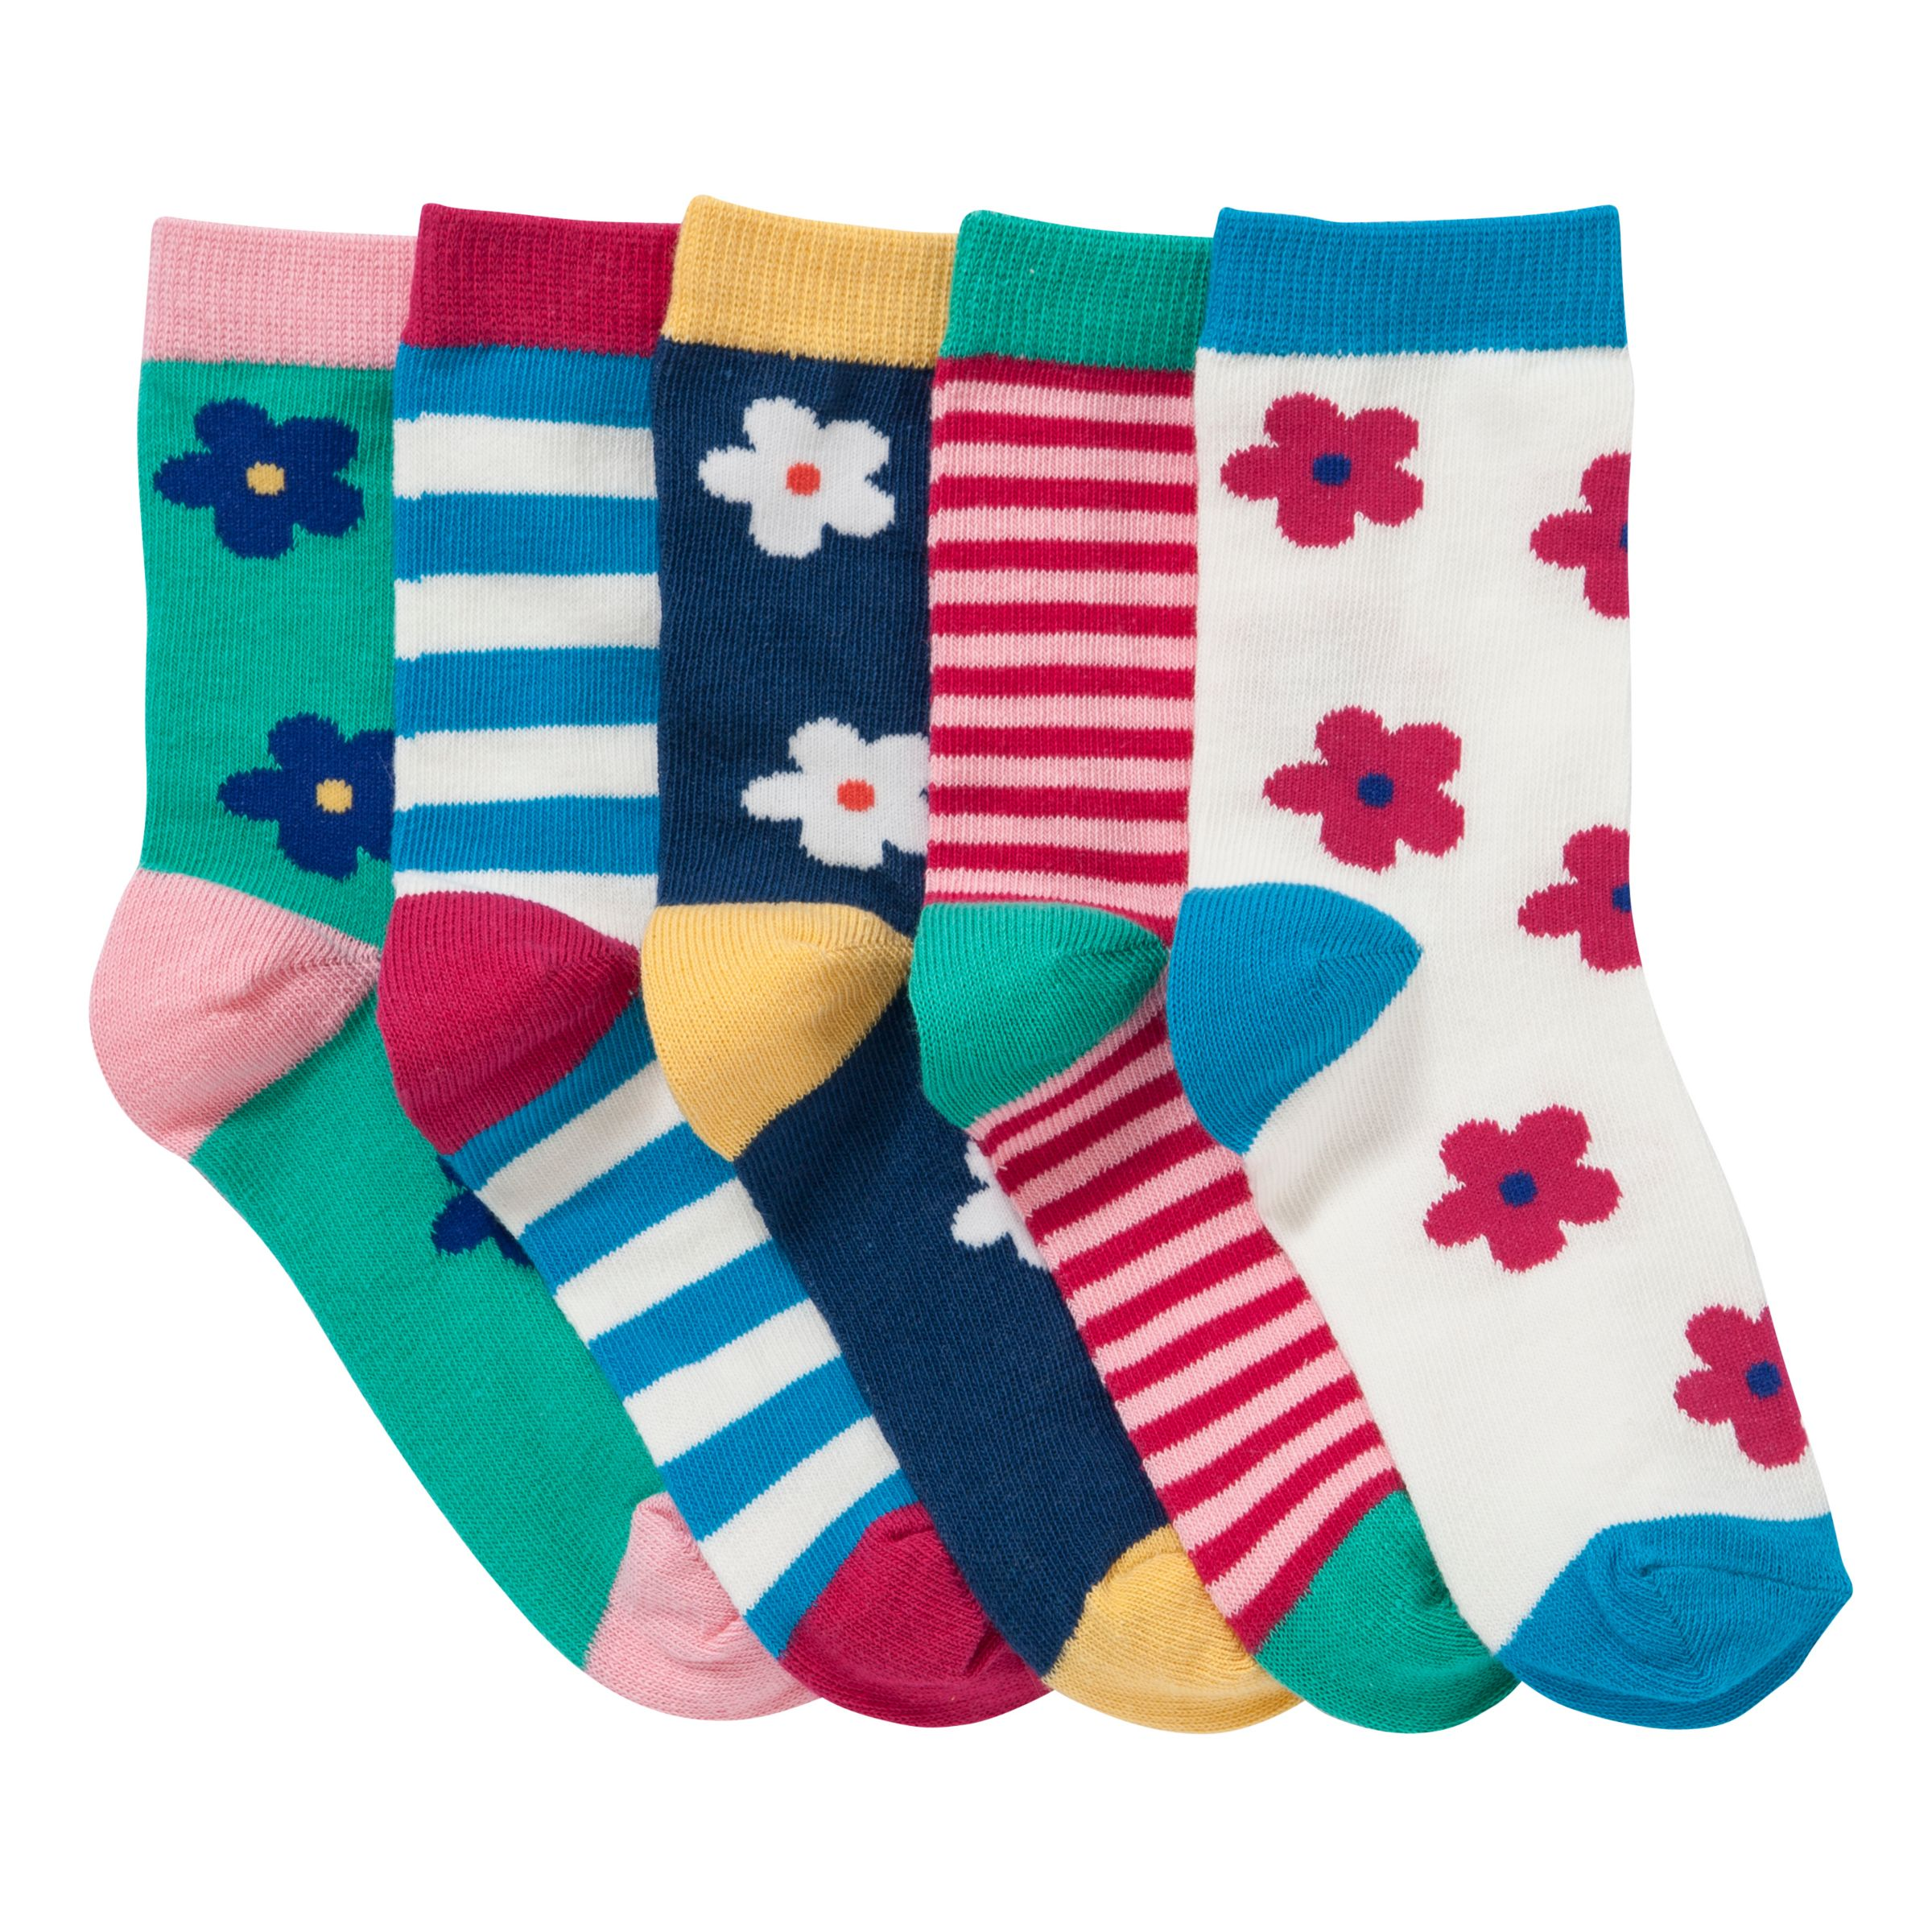 John Lewis Girl Bold Floral Socks, Pack of 5, Multi